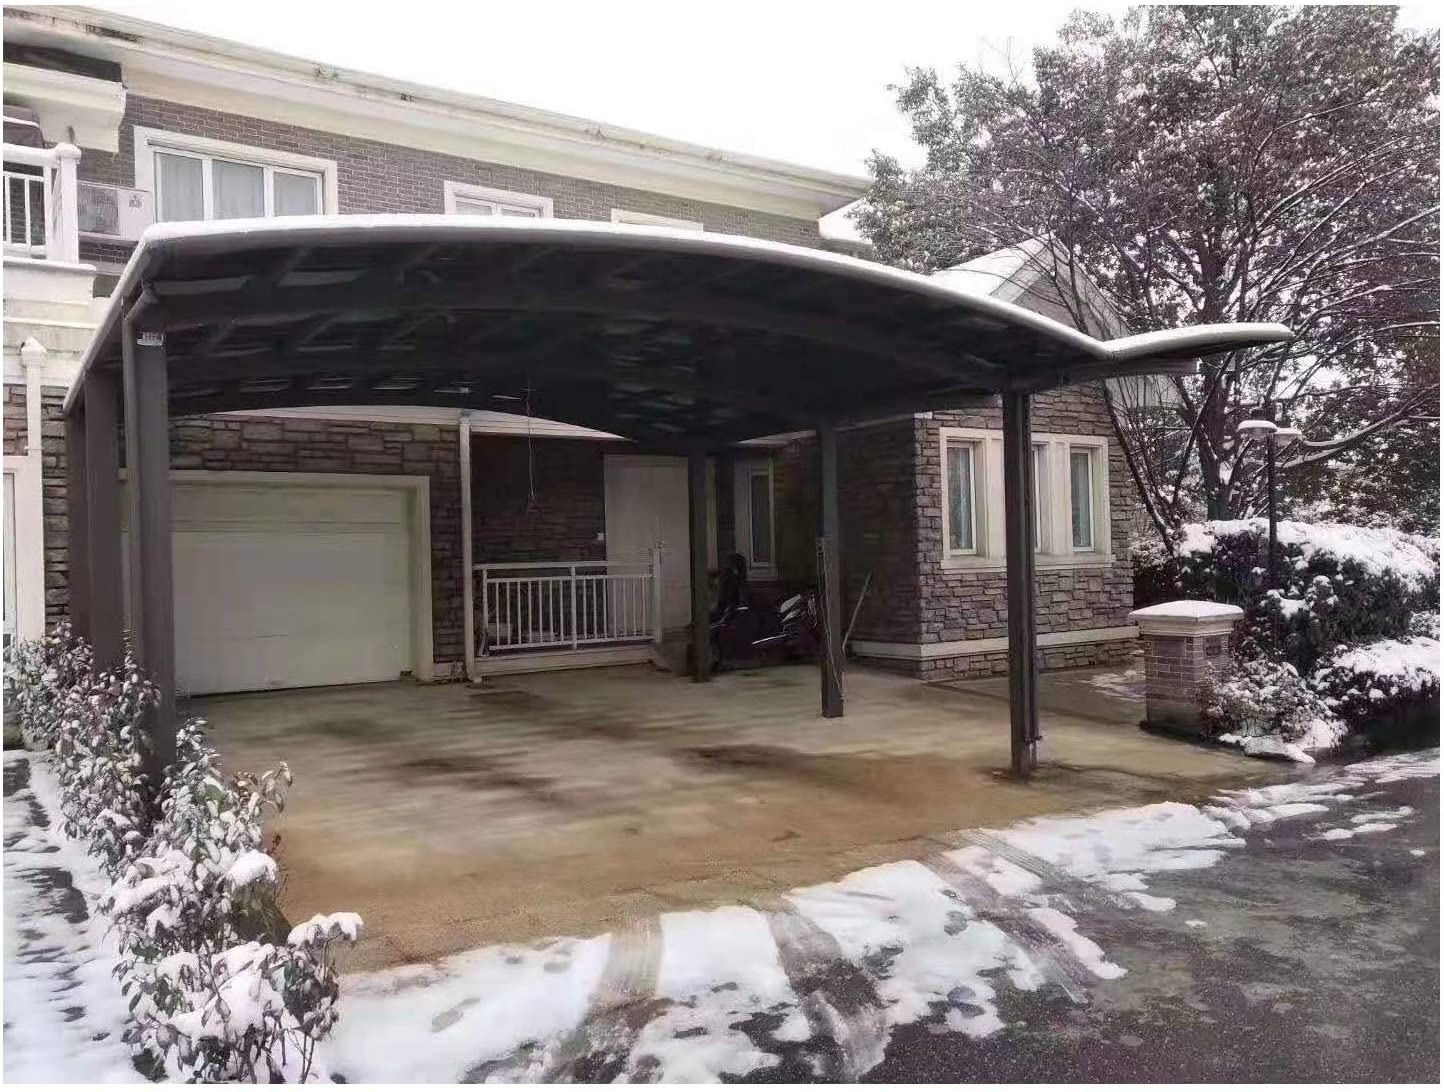 Amazon Com Litesort Two Car Carports Car Awnings Double Metal Carports Rv Roof 23 3 26 Feet Made By Aluminum And Polycarbonate Garden Outdoor